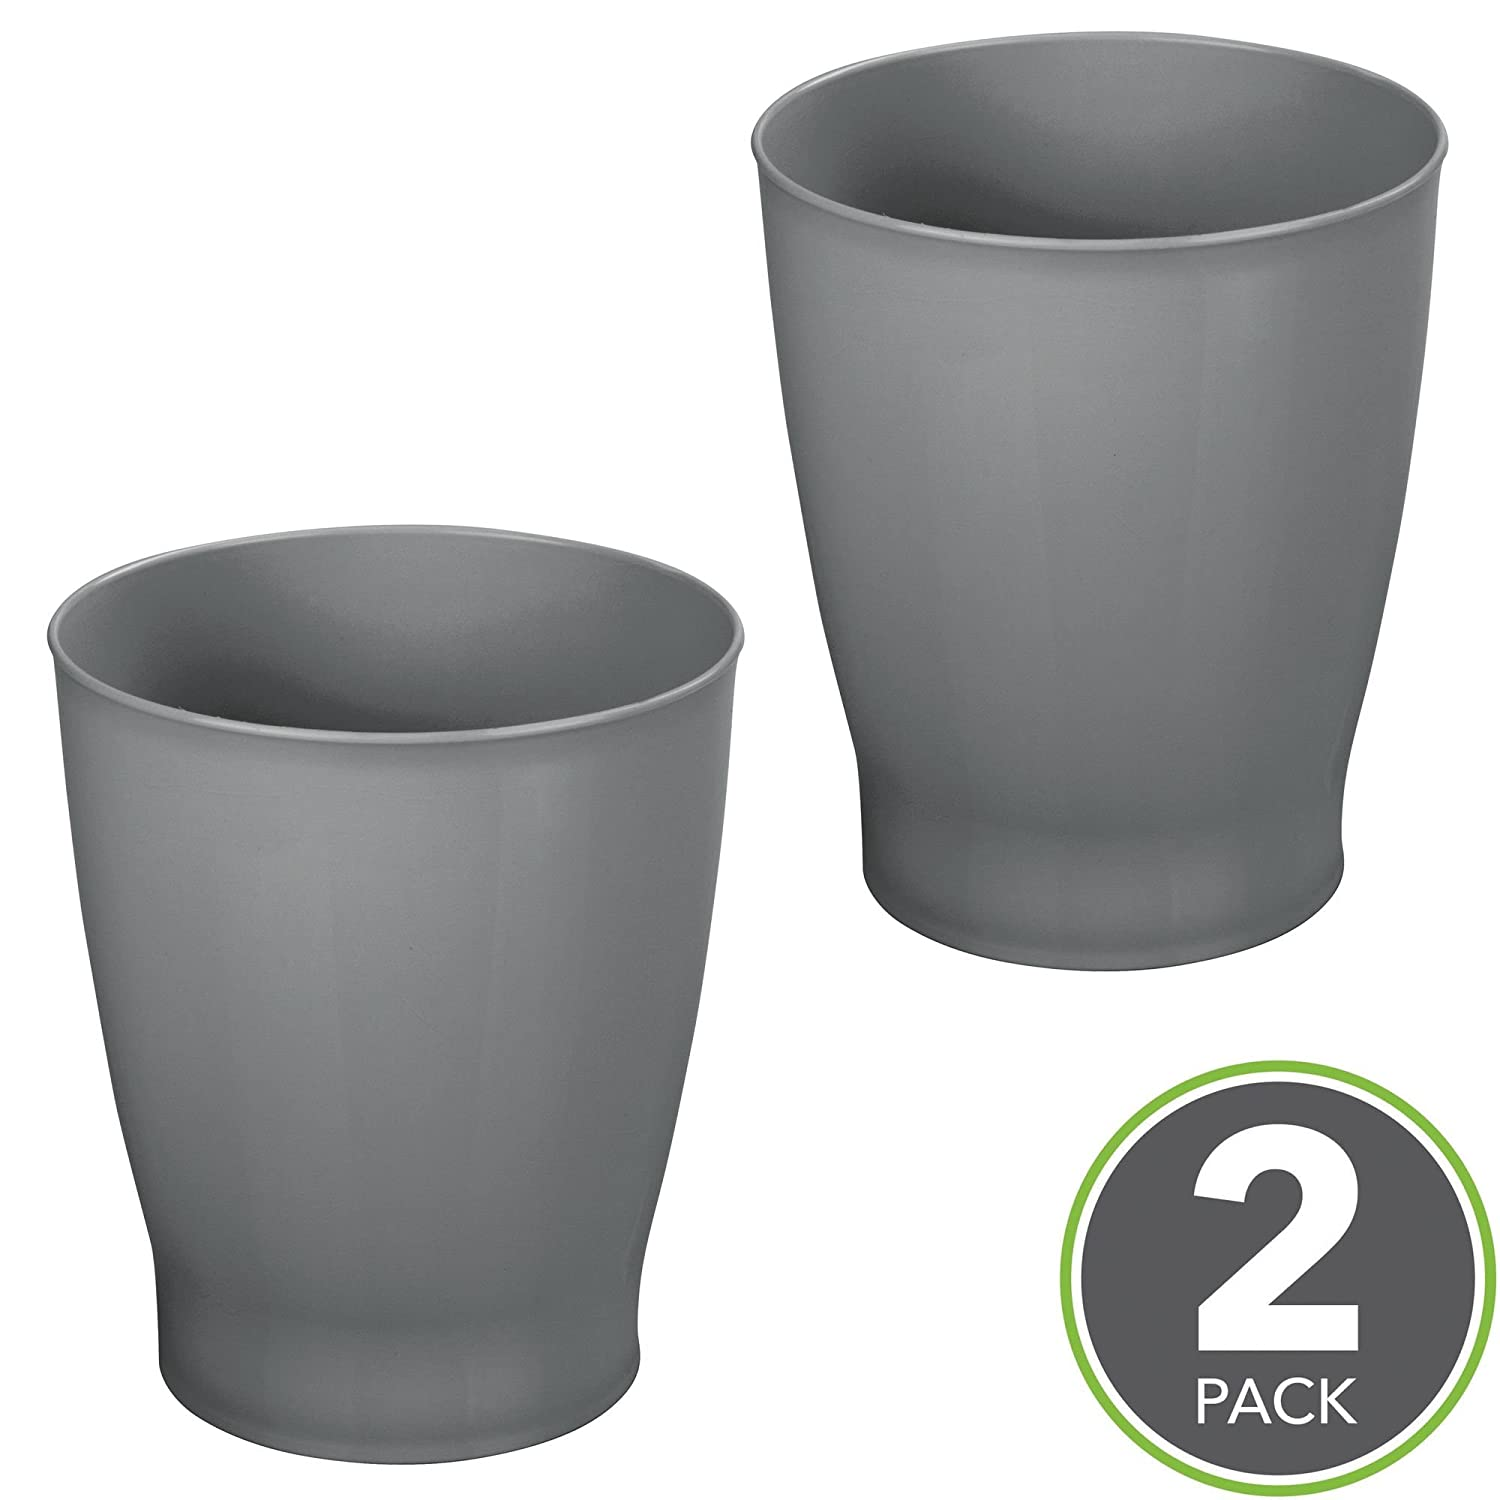 Kitchens Powder Rooms Charcoal Gray MetroDecor 8682MDBA Home Offices mDesign Slim Round Plastic Small Trash Can Wastebasket Garbage Container Bin for Bathrooms Kids Rooms 2 Pack